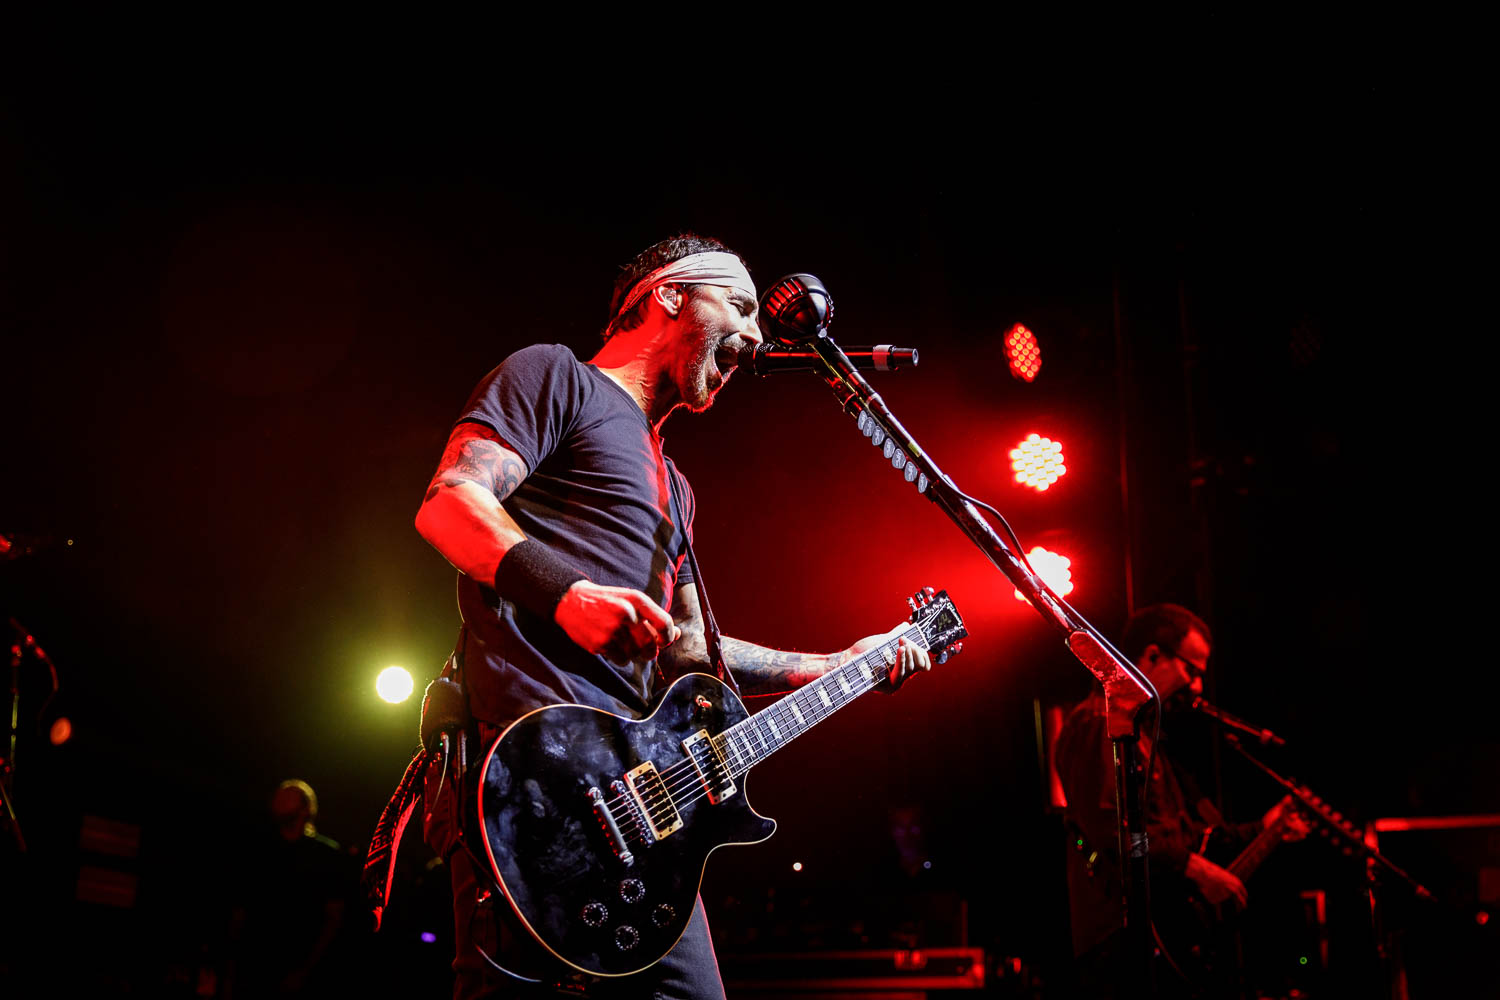 Godsmack at O2 Ritz in Manchester on February 28th 2019